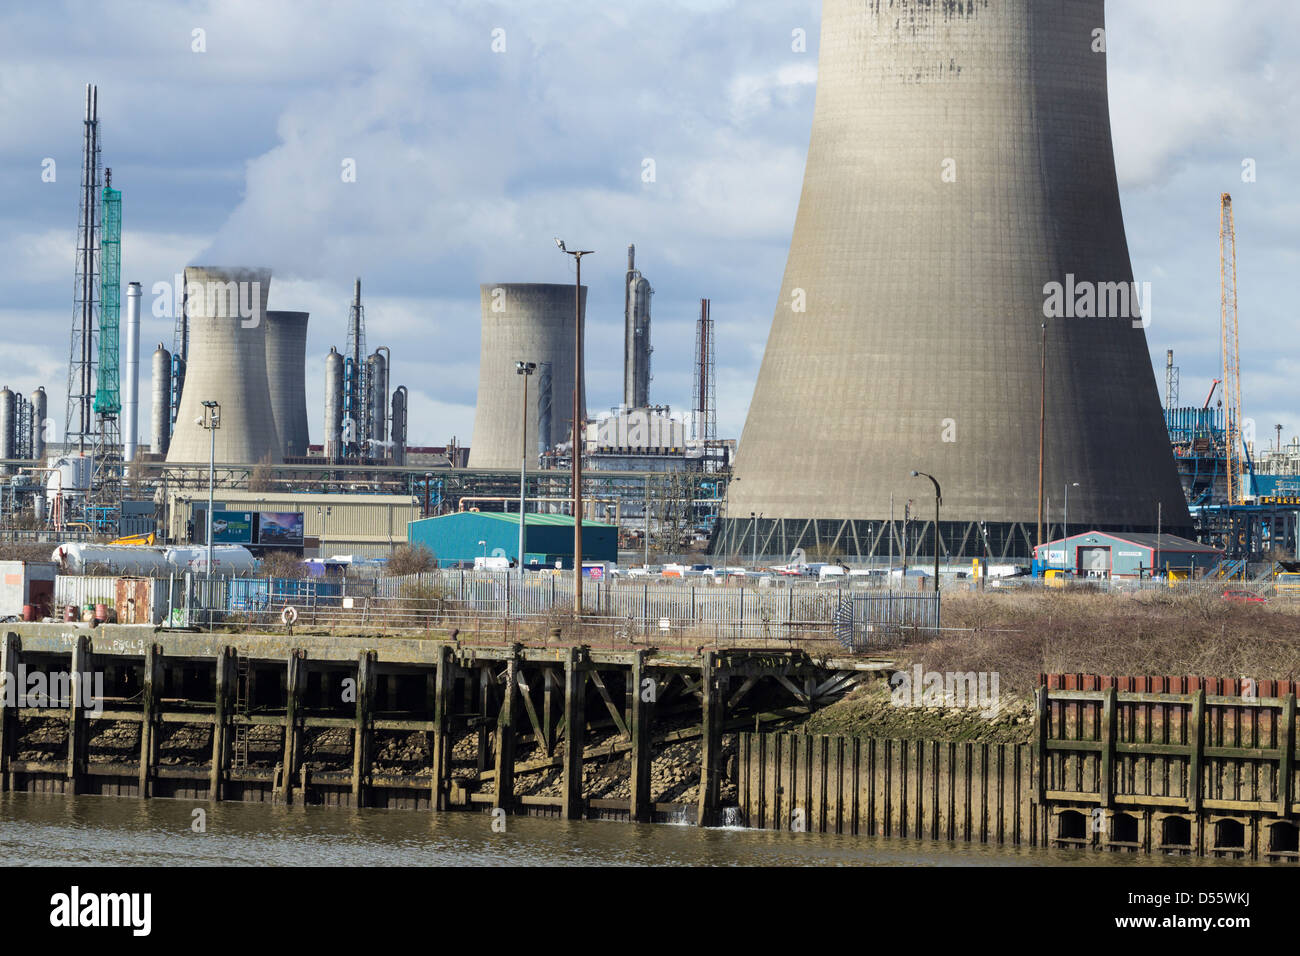 Ici Chemical Plant Stock Photos & Ici Chemical Plant Stock